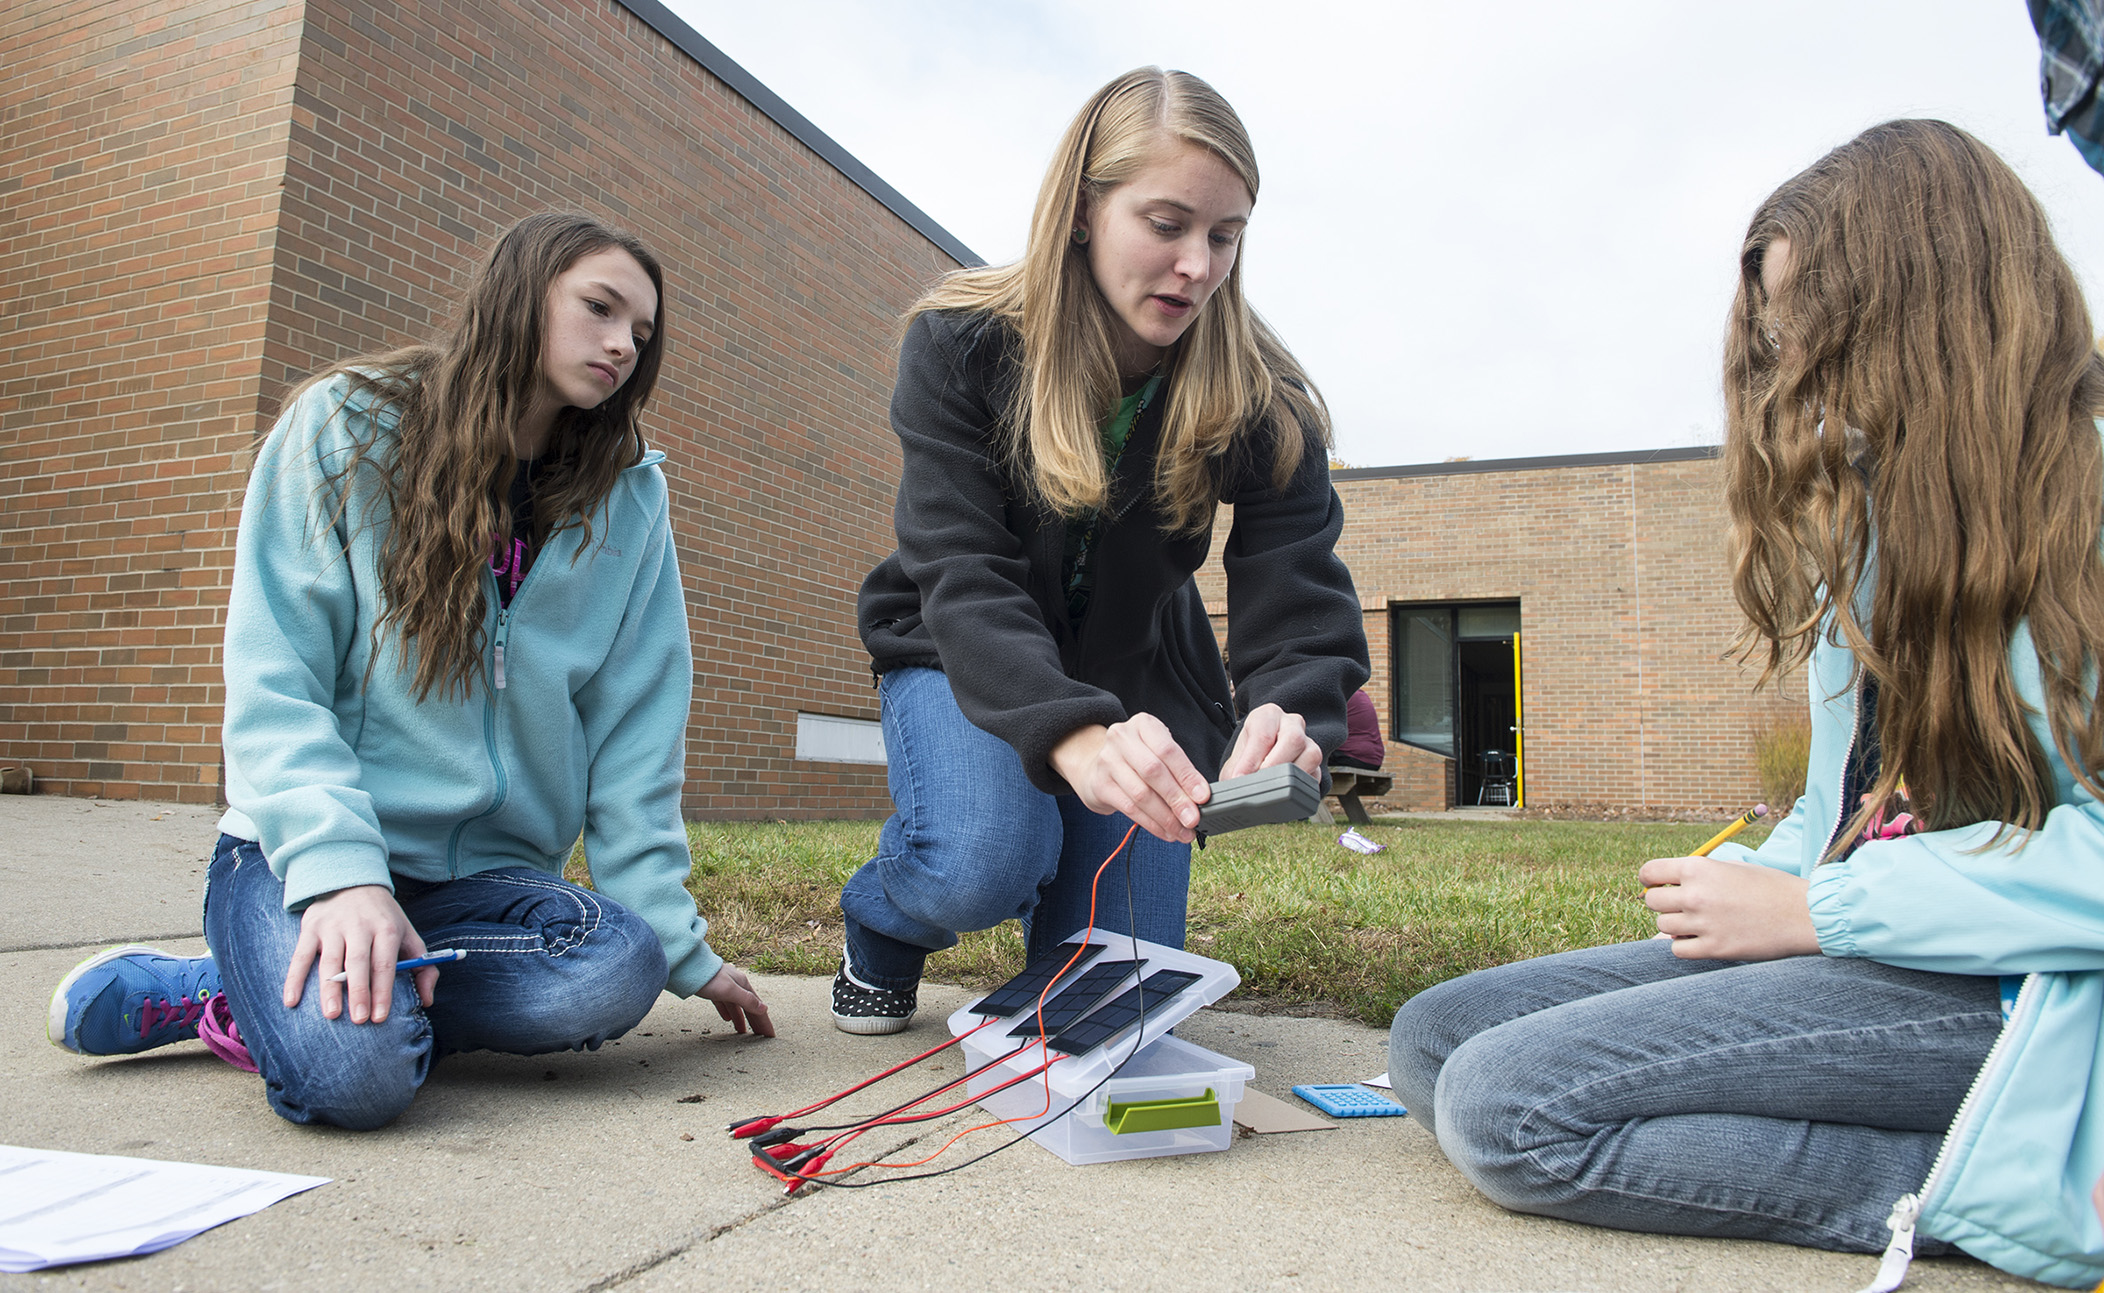 In this photo, Bullock Creek Middle School teacher Ashley Meyer (center) shows students Tiana Lowery (left) and Veronica Card how to measure the energy generated by solar panels.